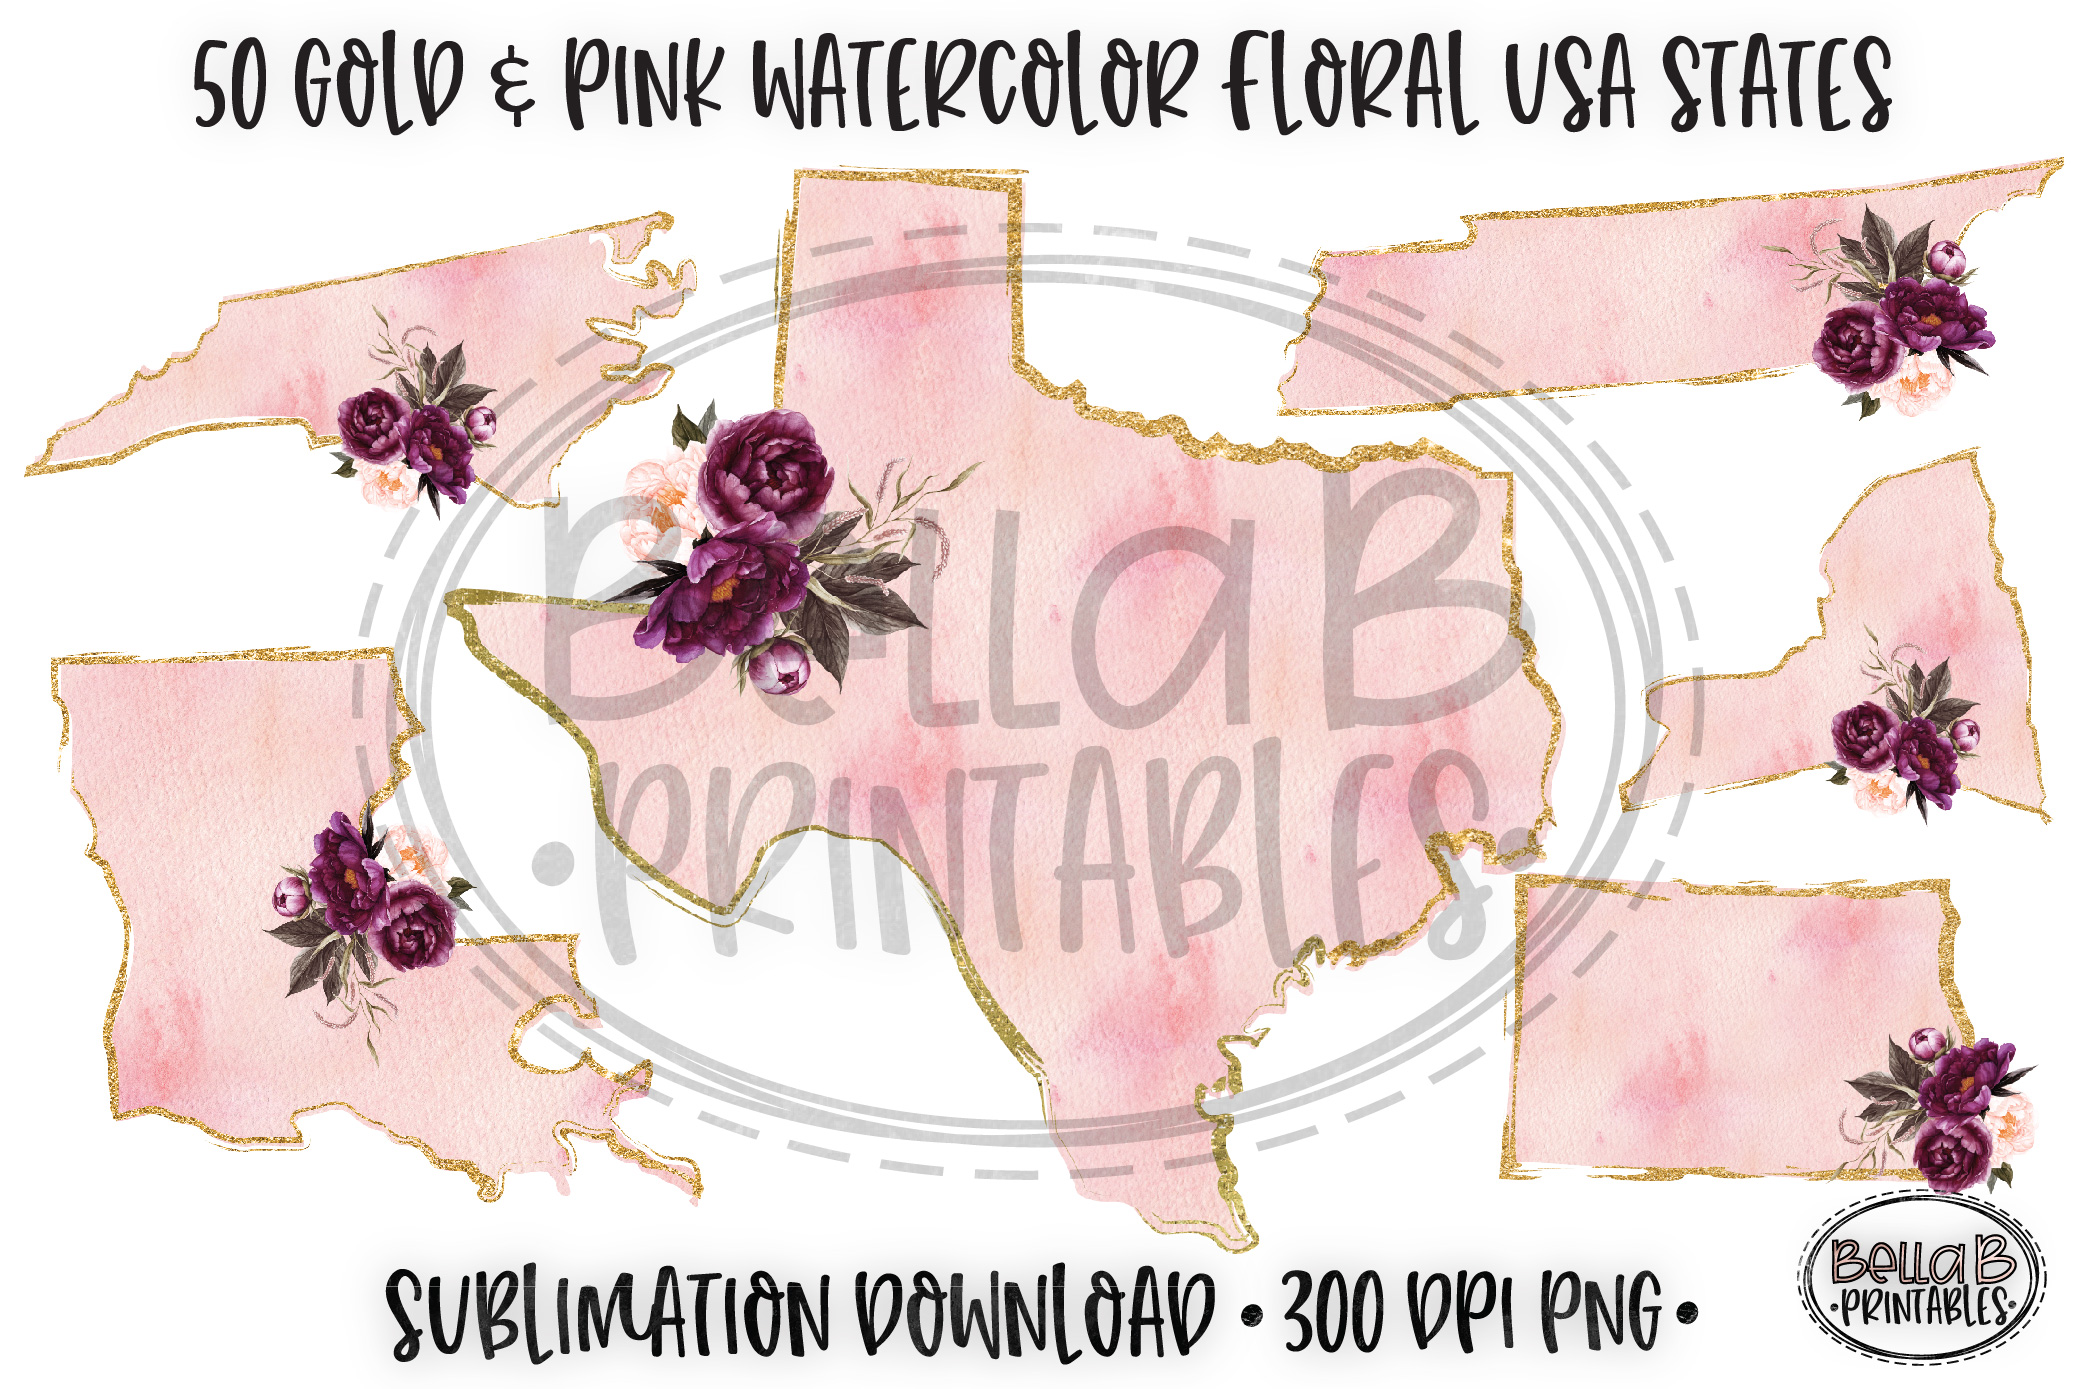 Gold and Pink Watercolor USA States Sublimation Bundle example image 1